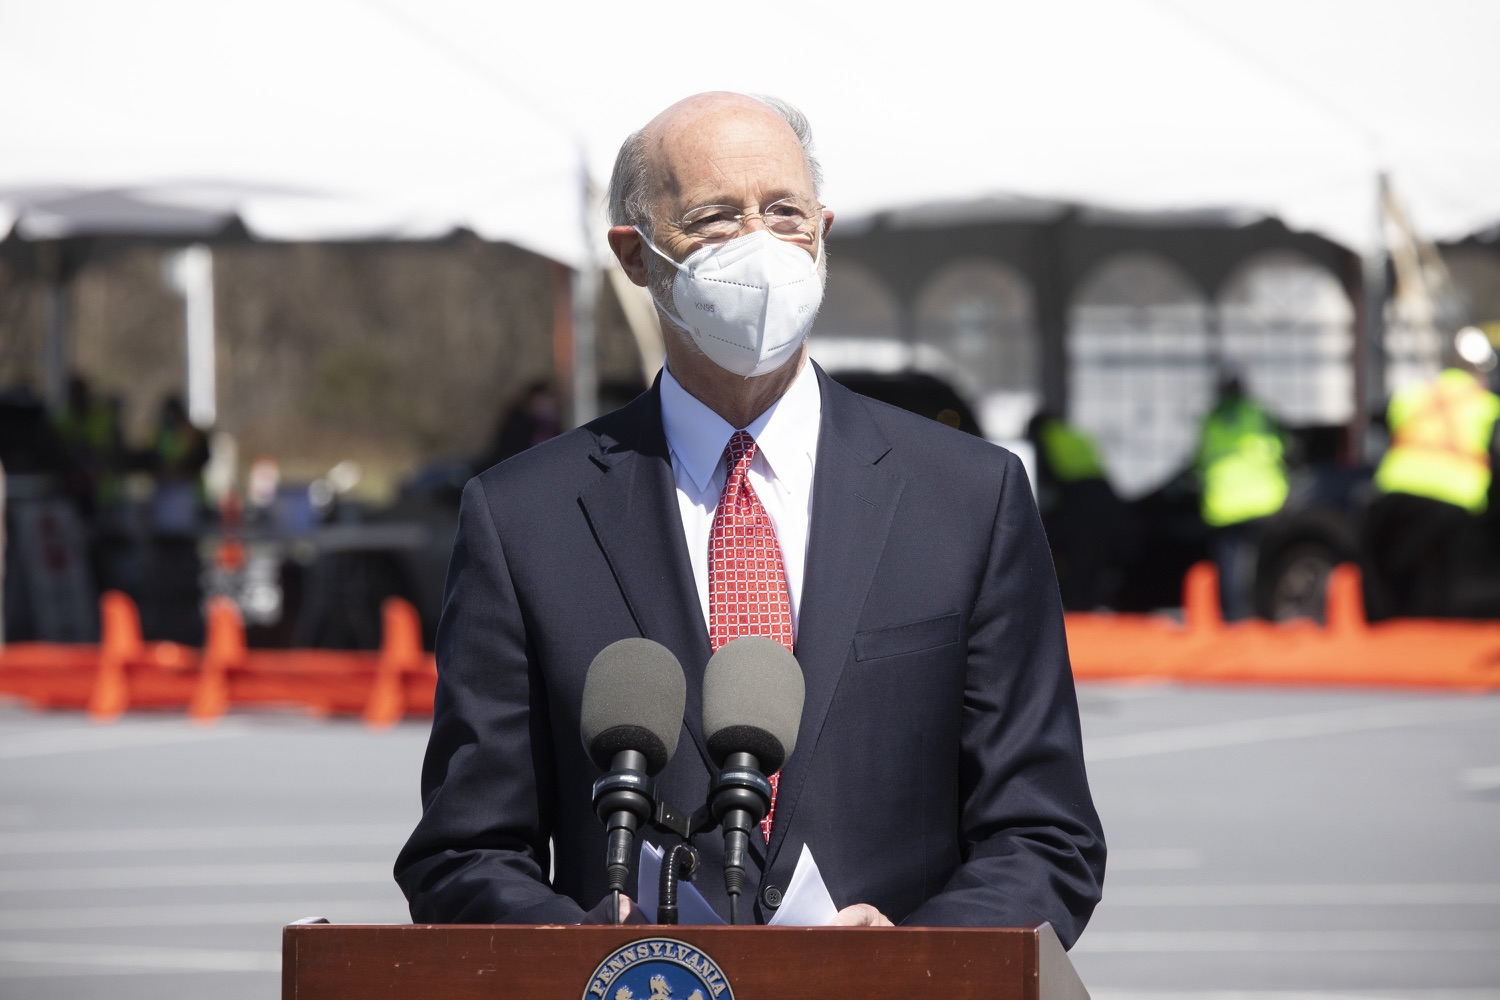 """<a href=""""https://filesource.wostreaming.net/commonwealthofpa/photo/18631_gov_hacc_vaccine_dz_011.jpg"""" target=""""_blank"""">⇣Download Photo<br></a>Pennsylvania Governor Tom Wolf speaking with the press.  Governor Wolf today visited the COVID-19 drive-thru mass vaccination clinic for Dauphin County residents at Harrisburg Area Community College. The drive-thru clinic was developed in partnership with UPMC Pinnacle and Dauphin County. He was joined by UPMC Pinnacle President Phil Guarneschelli and Dauphin County Commissioners Mike Pries and George P. Hartwick III.  HARRISBURG, PA -- March 30, 2021"""